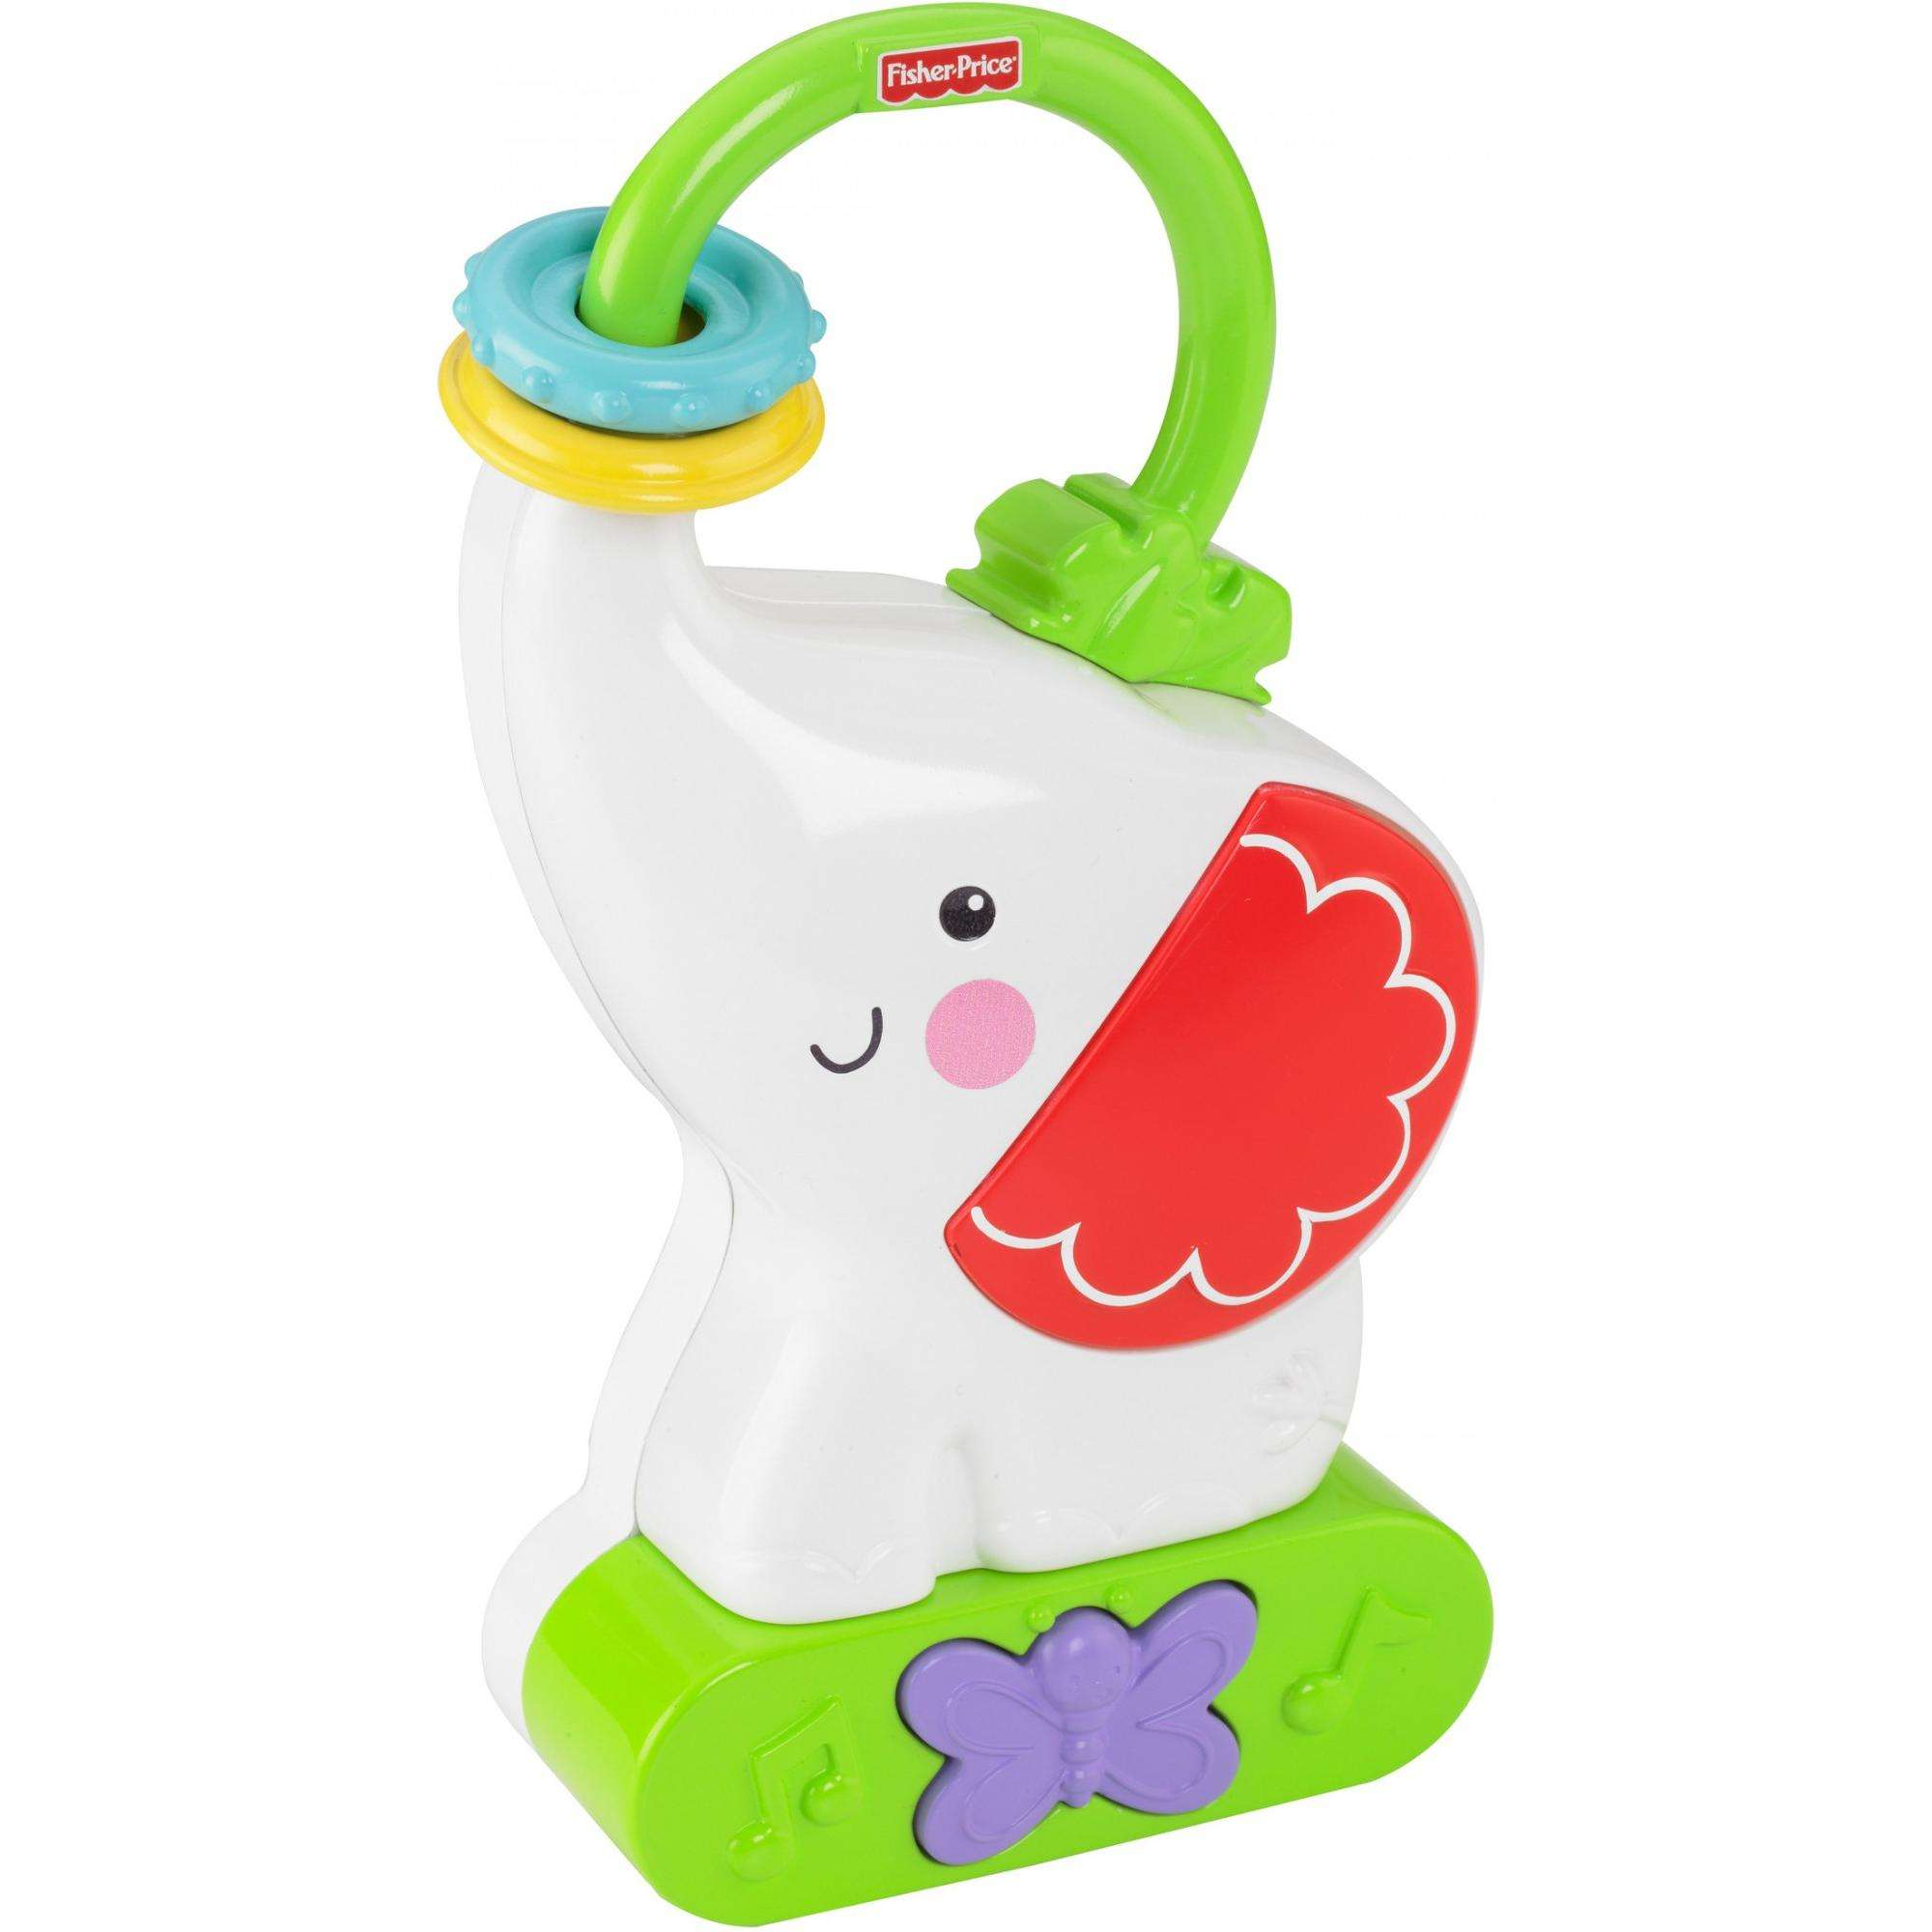 Fisher-Price Rainforest Friends Tote 'n Glow Soother